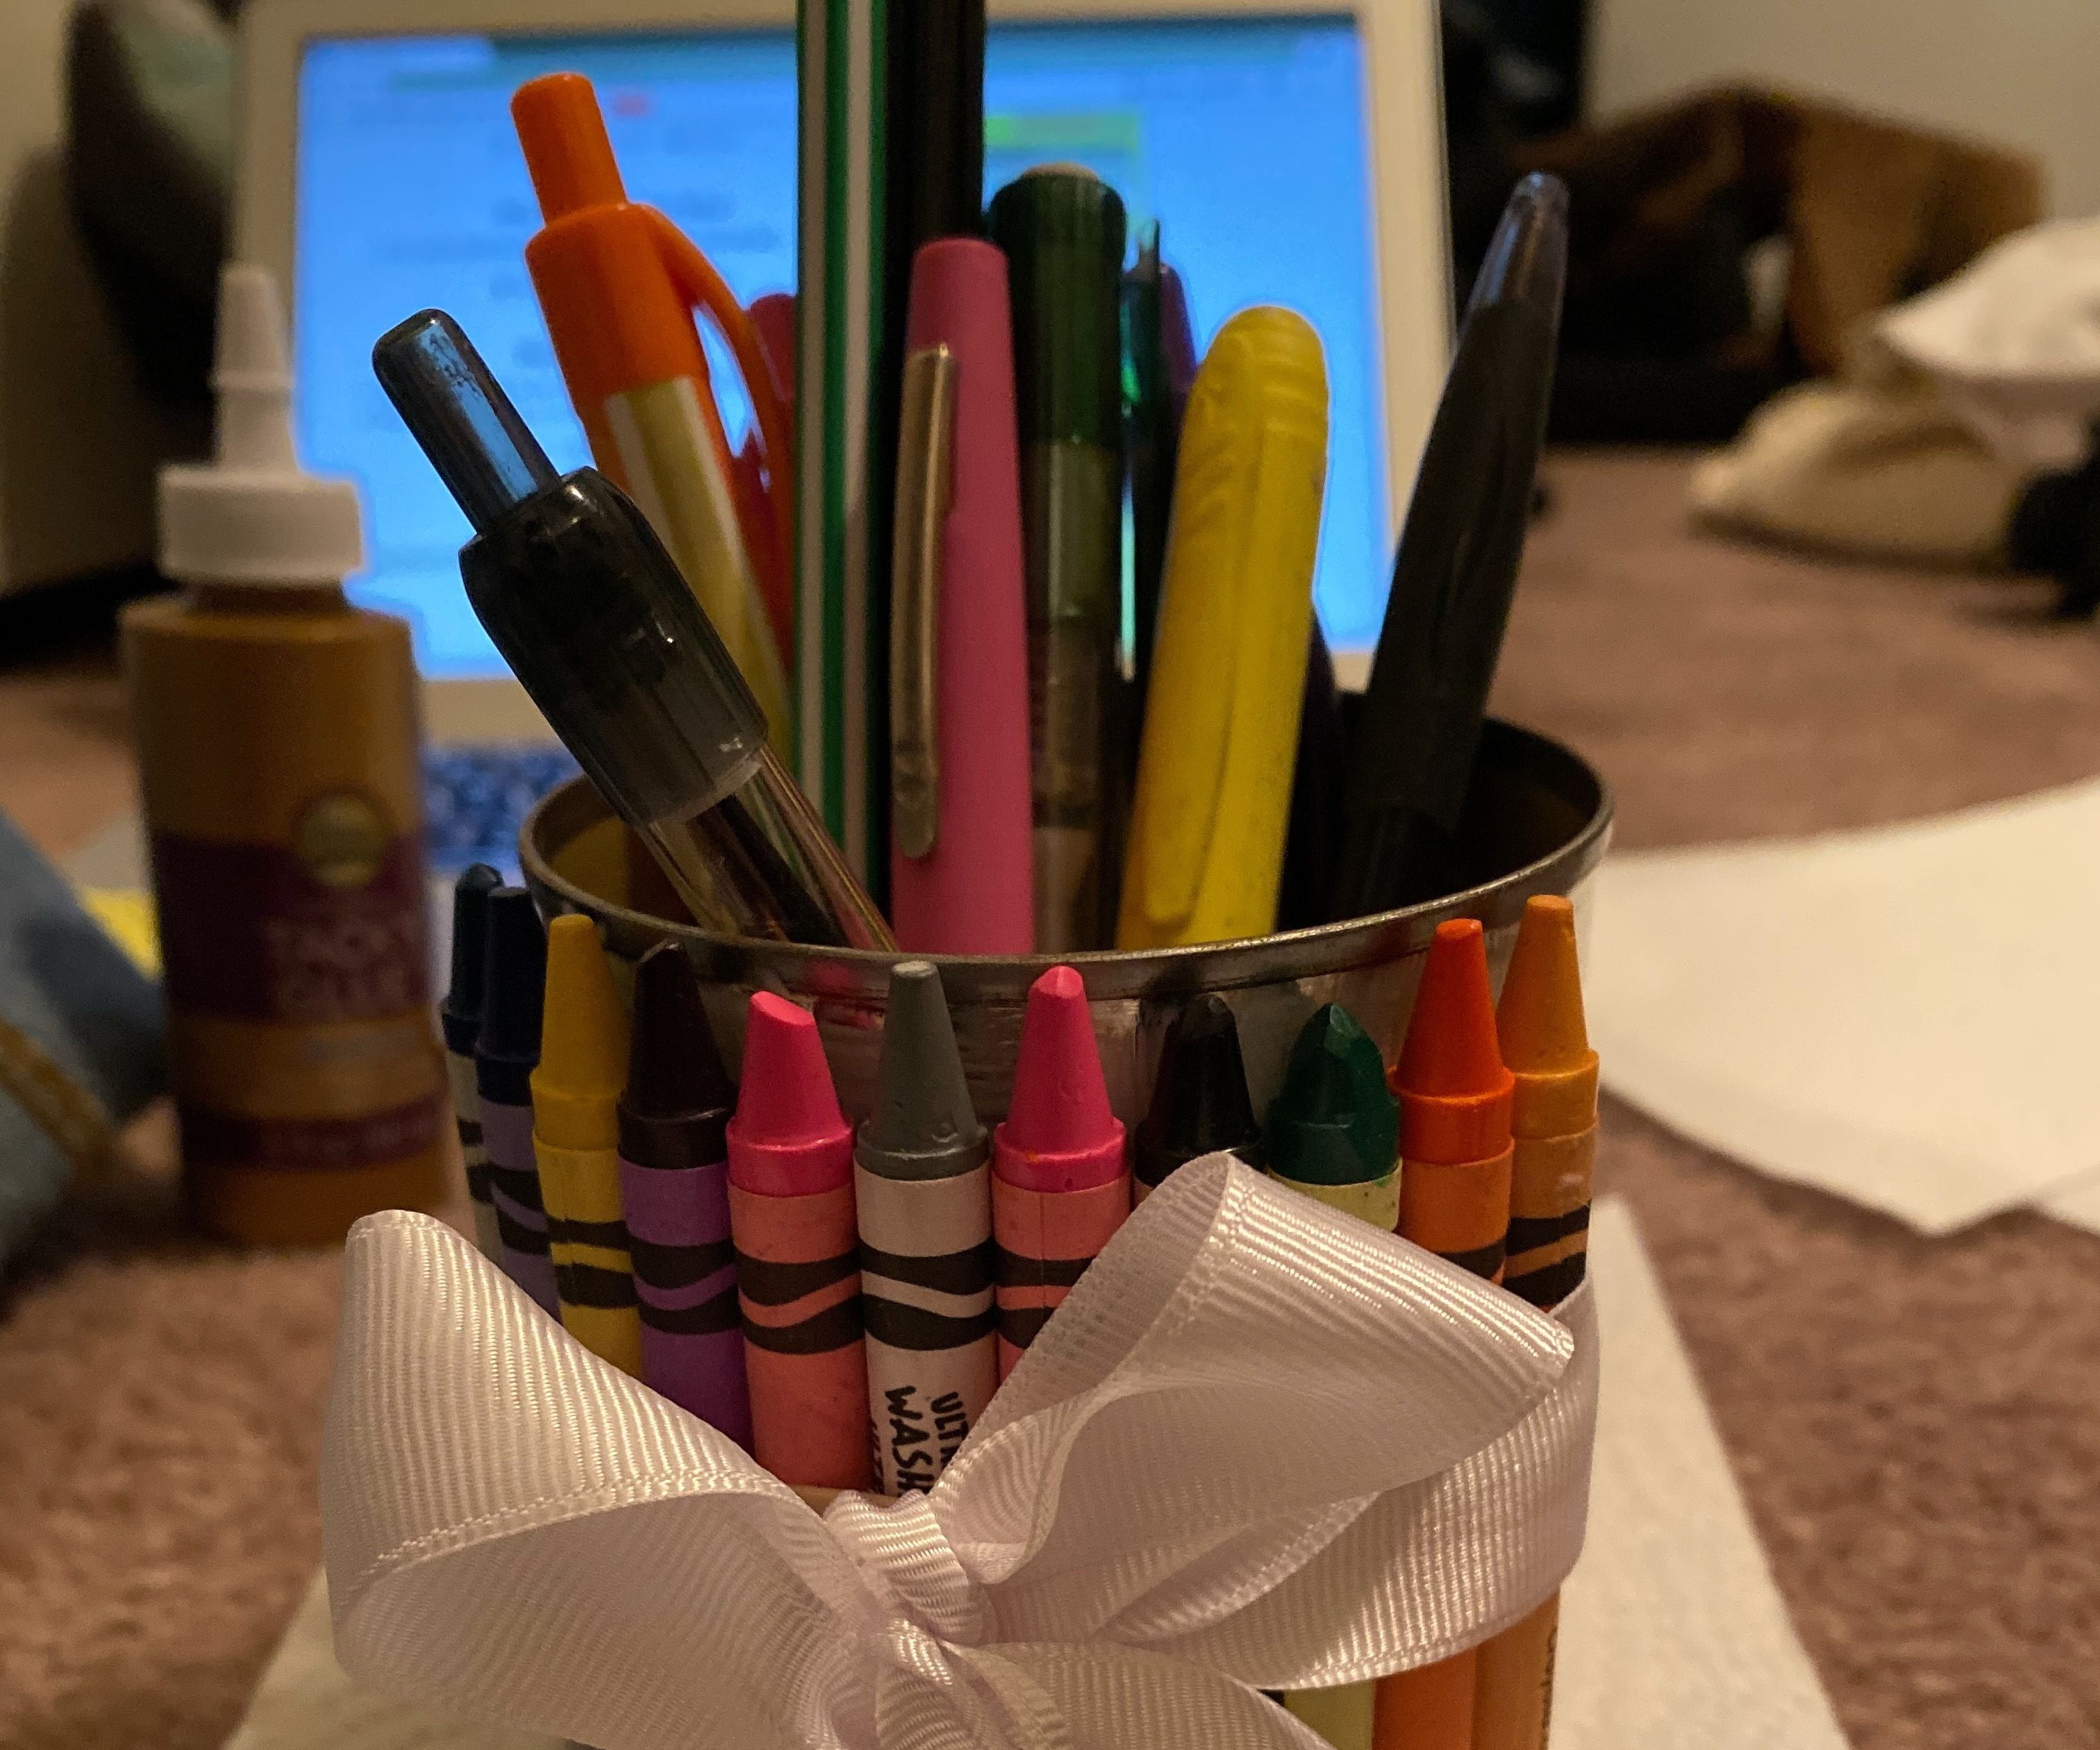 How to Make a Crayon Pencil Holder